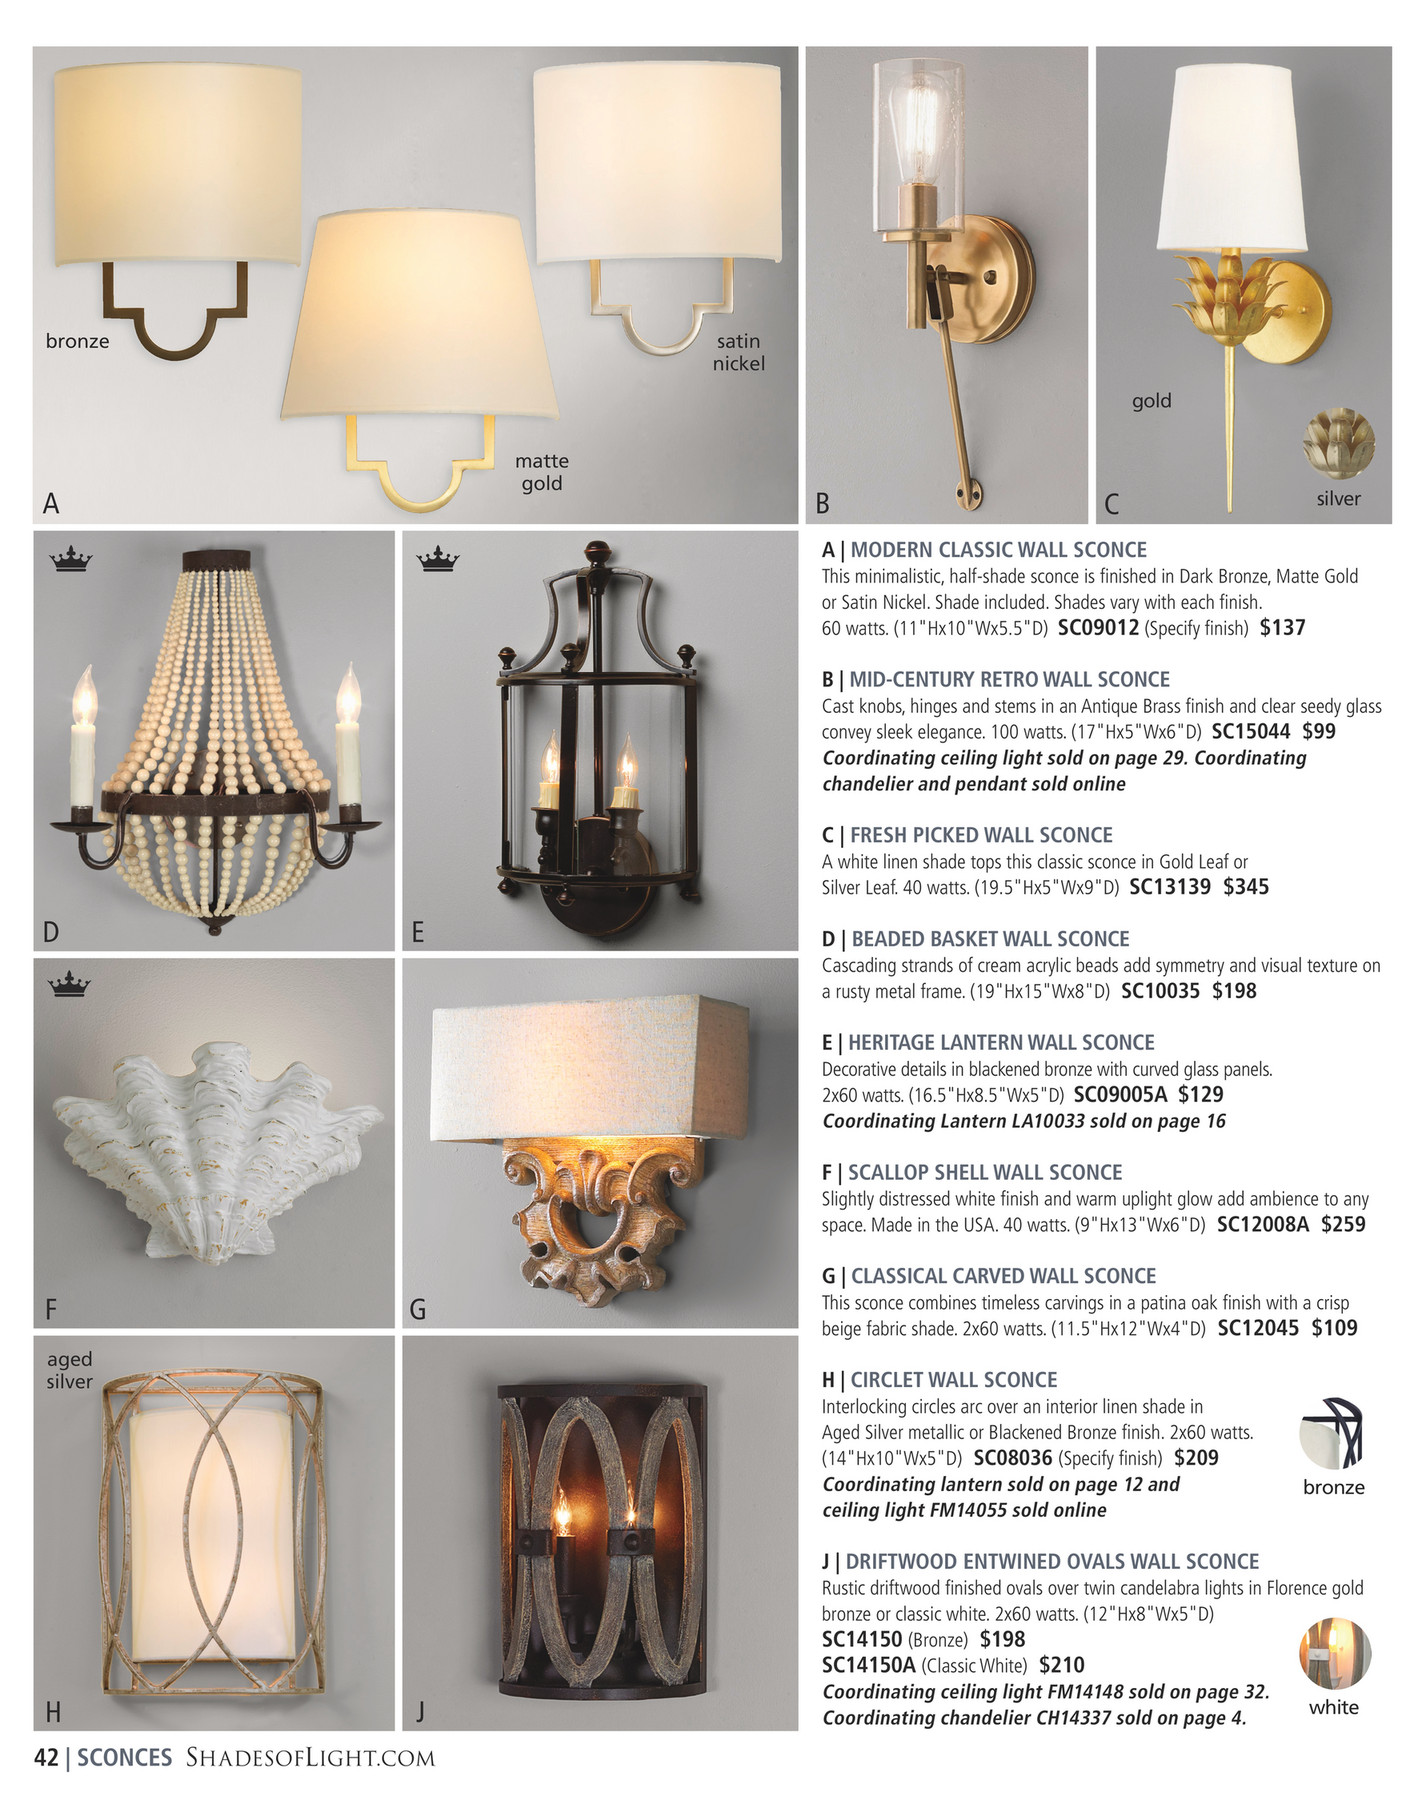 Shades Of Light Tropical Repose 2016 Scallop Shell Wall Sconce